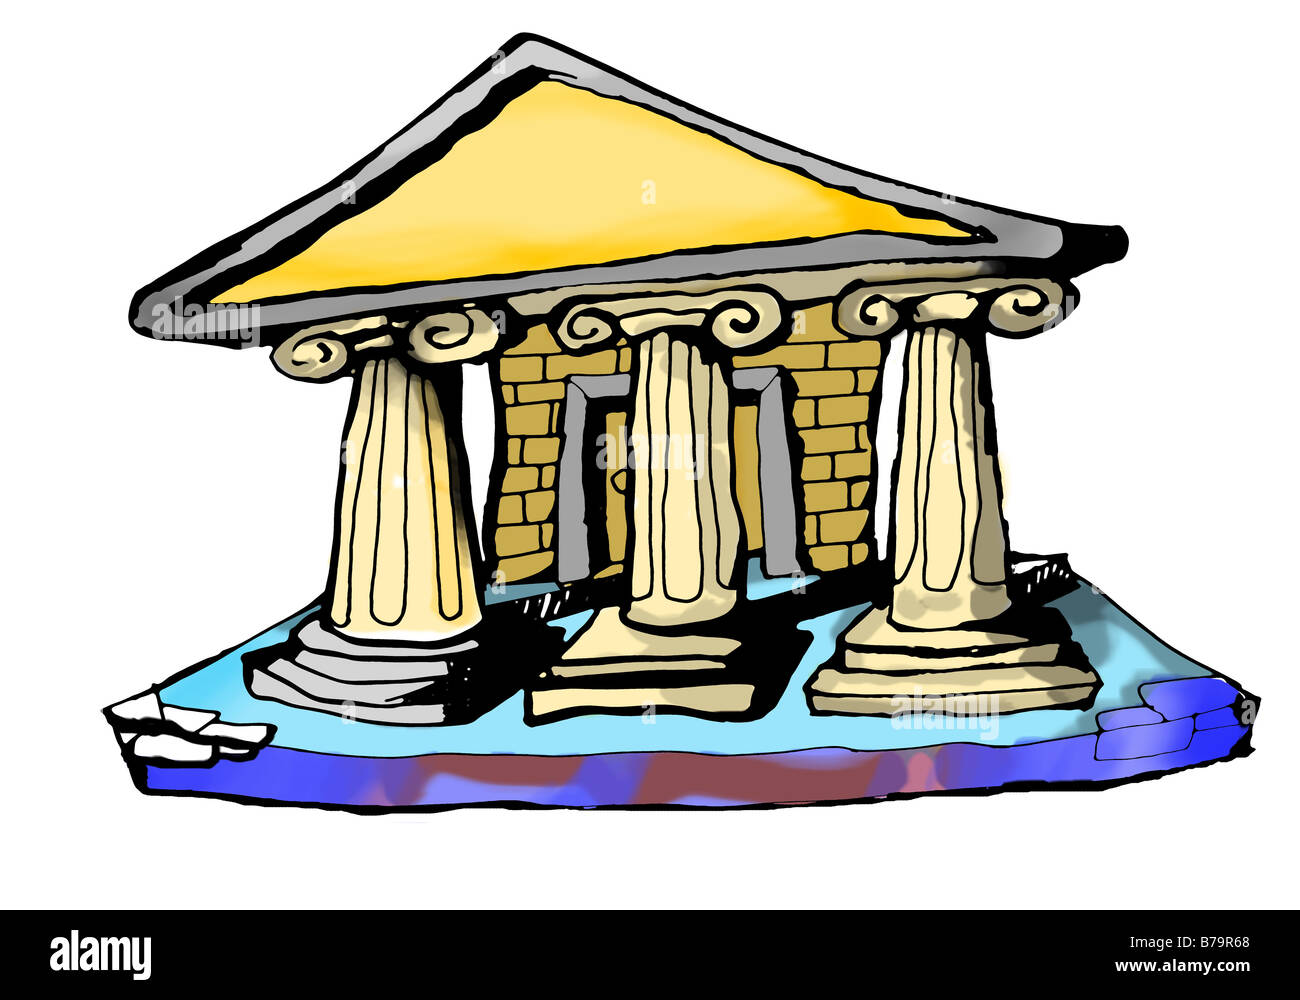 a cut out illustration of an ancient temple - Stock Image